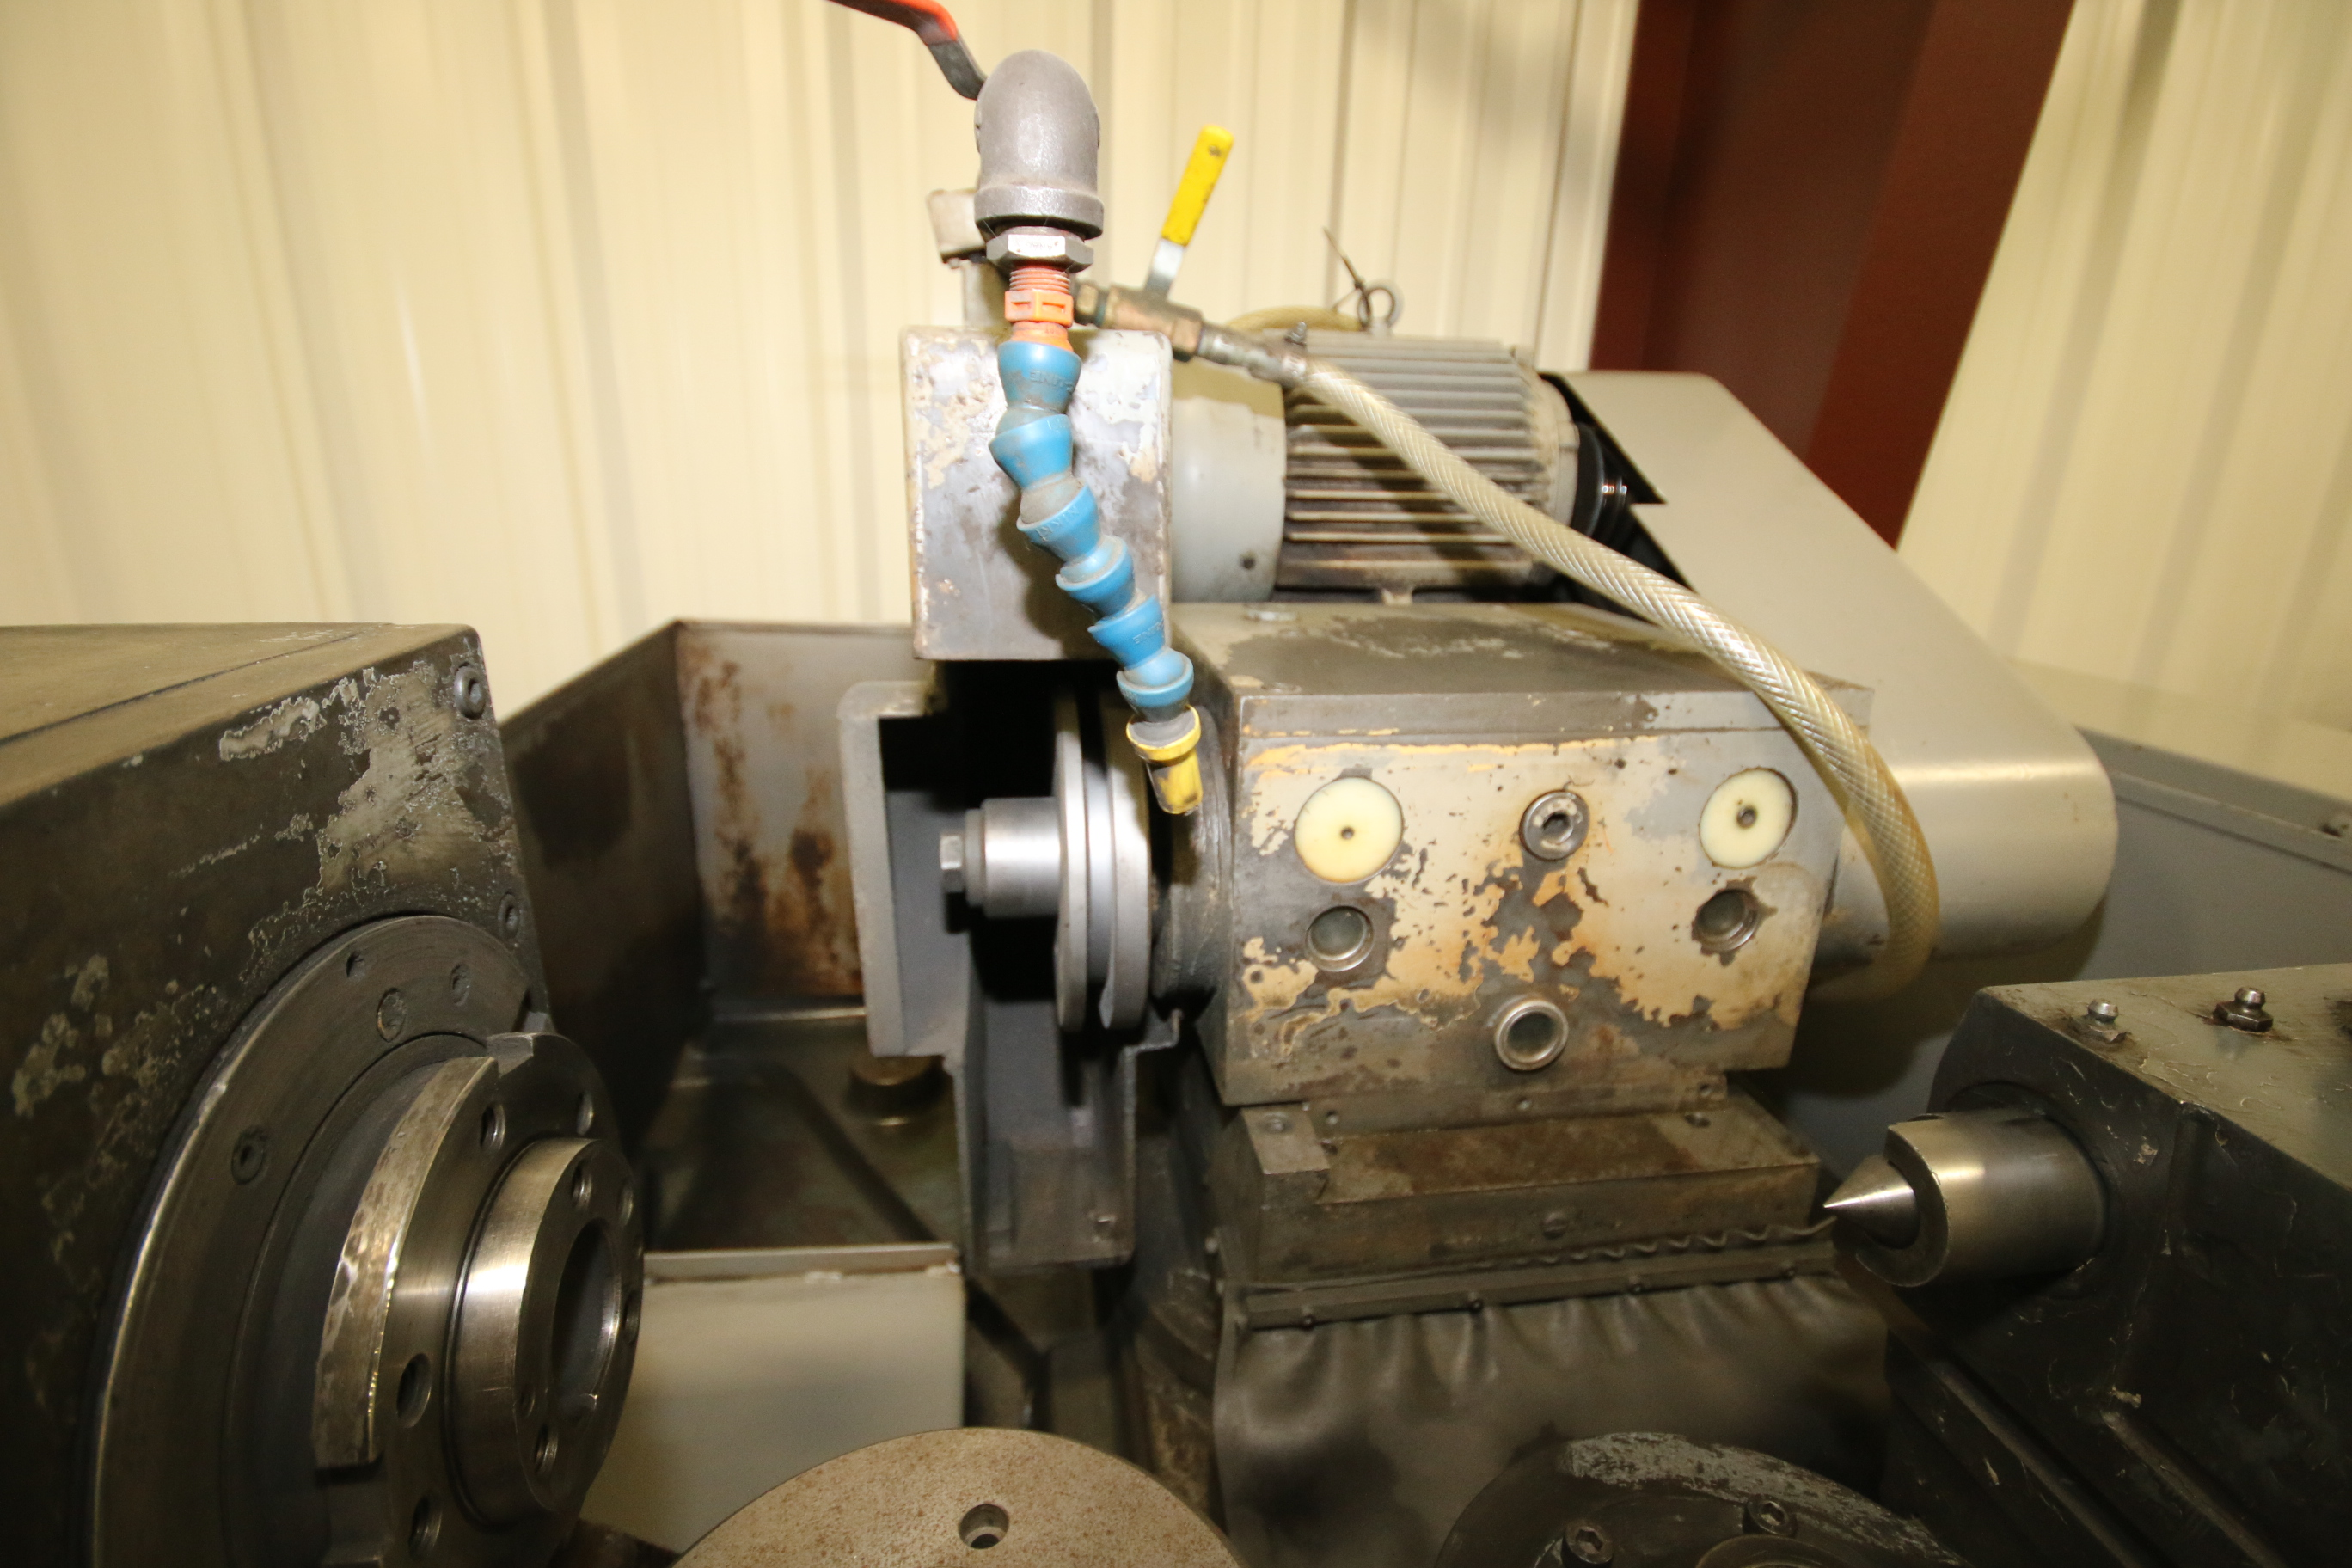 Lot 52 - 2002 R-Series OD Grinder with Conversion to CNC by Tru Tech Systems, Model OD-10x20, S/N TTS-8019,